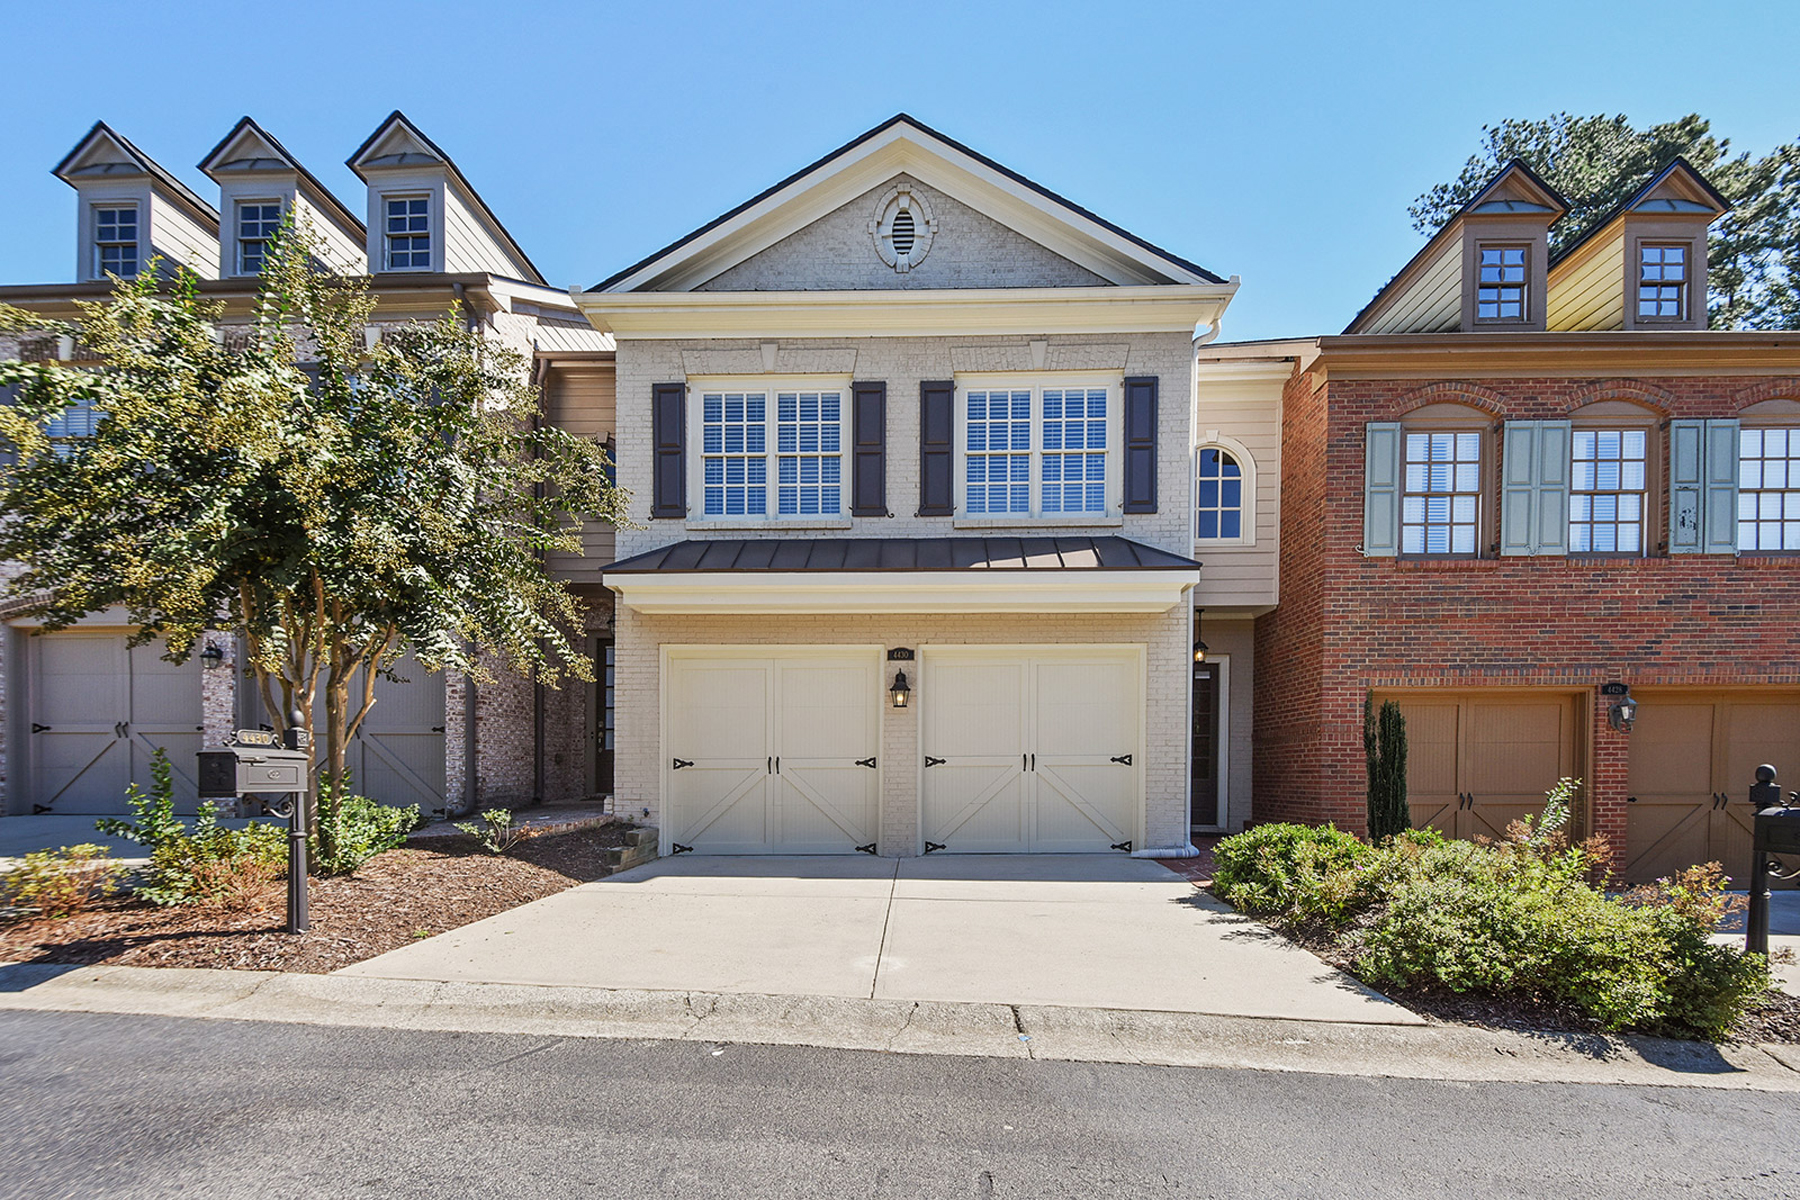 Townhouse for Sale at Charming Smyrna/Vinings Townhome 4430 Wilkerson Manor Dr Smyrna, Georgia 30080 United States